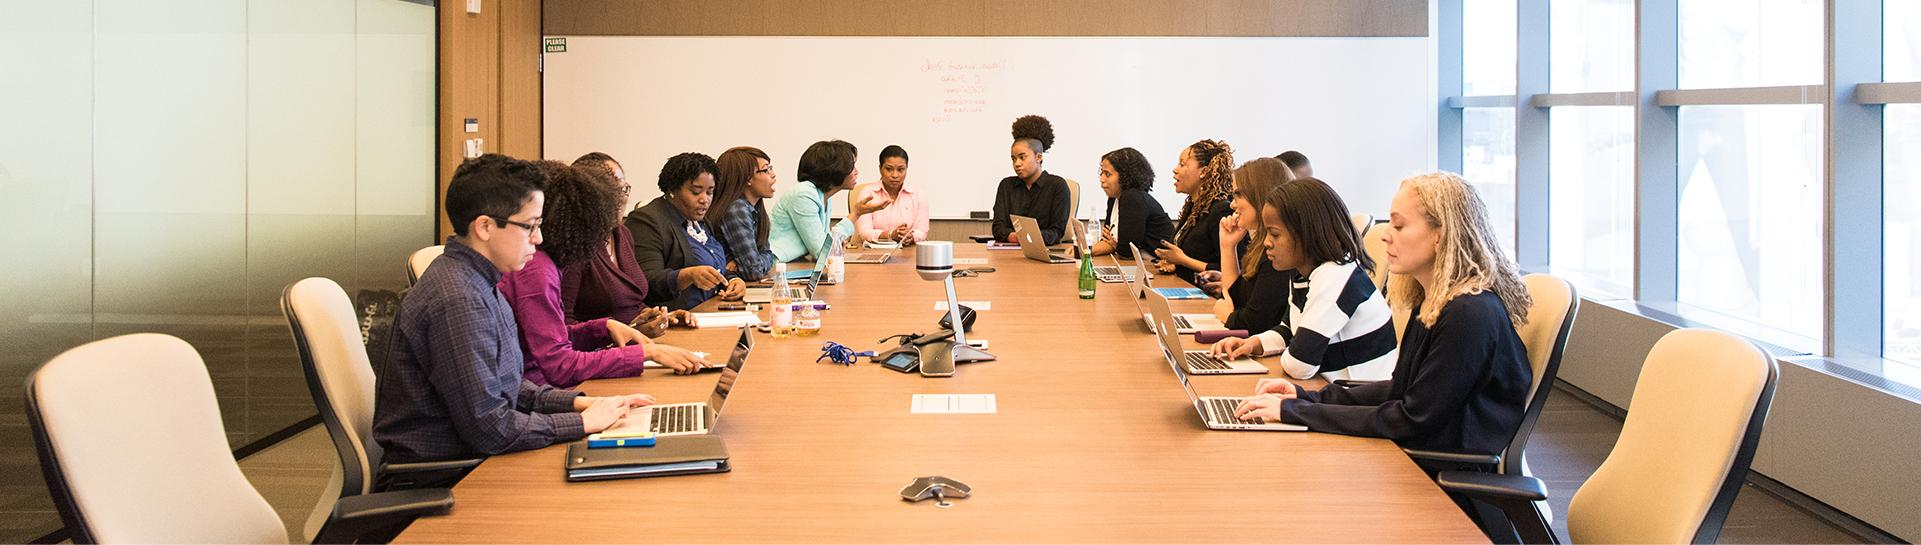 A group of professionals sitting at a conference room table